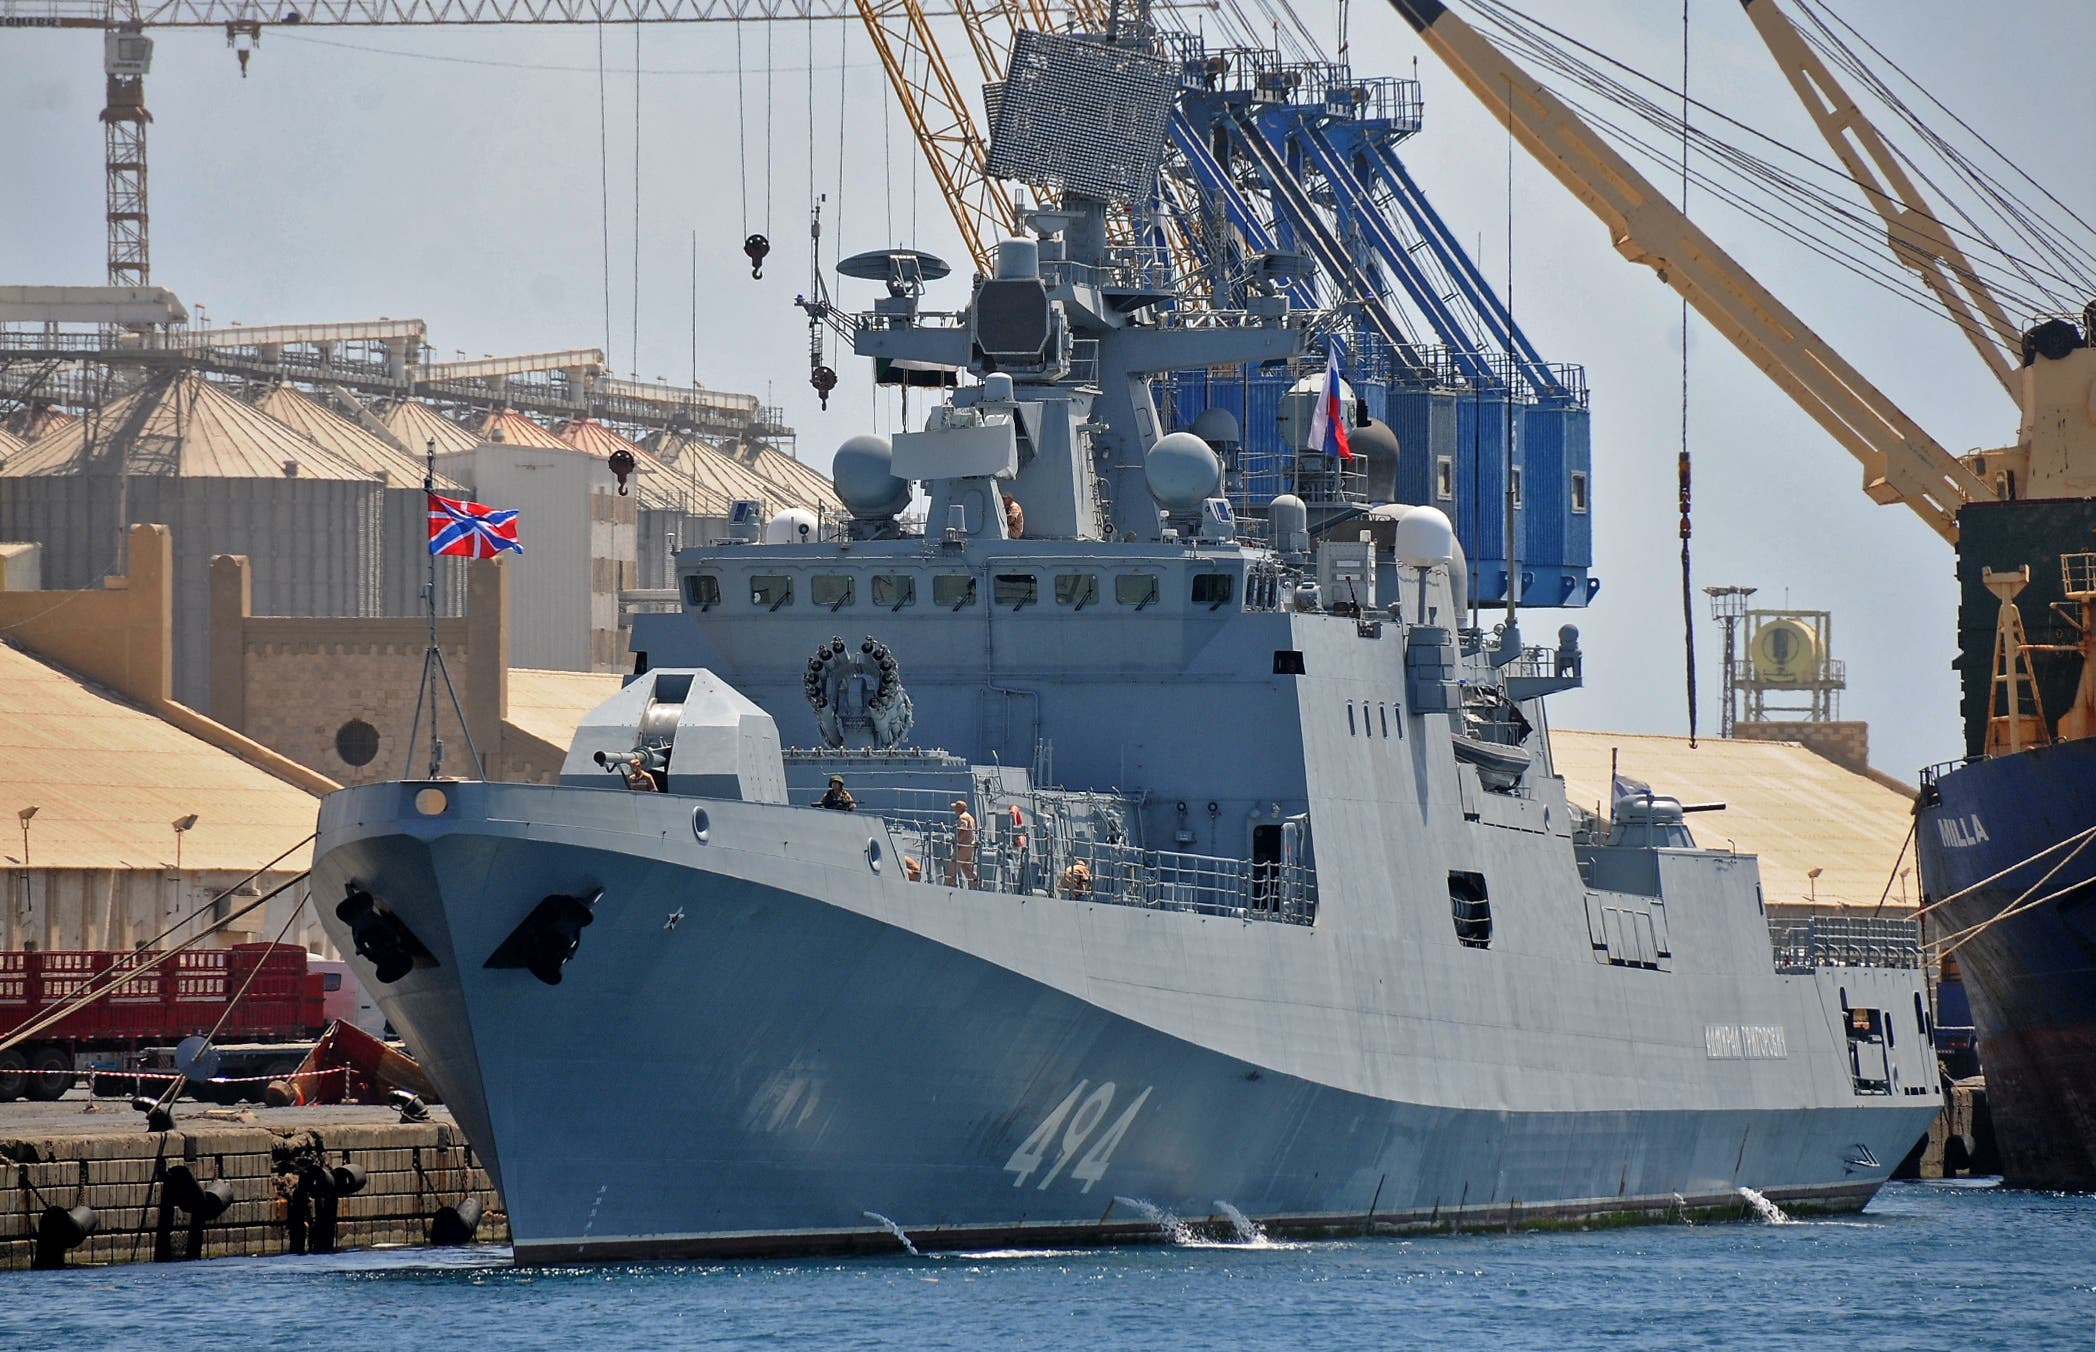 Moscow: Sudan has not withdrawn from the agreement to establish a Russian naval facility